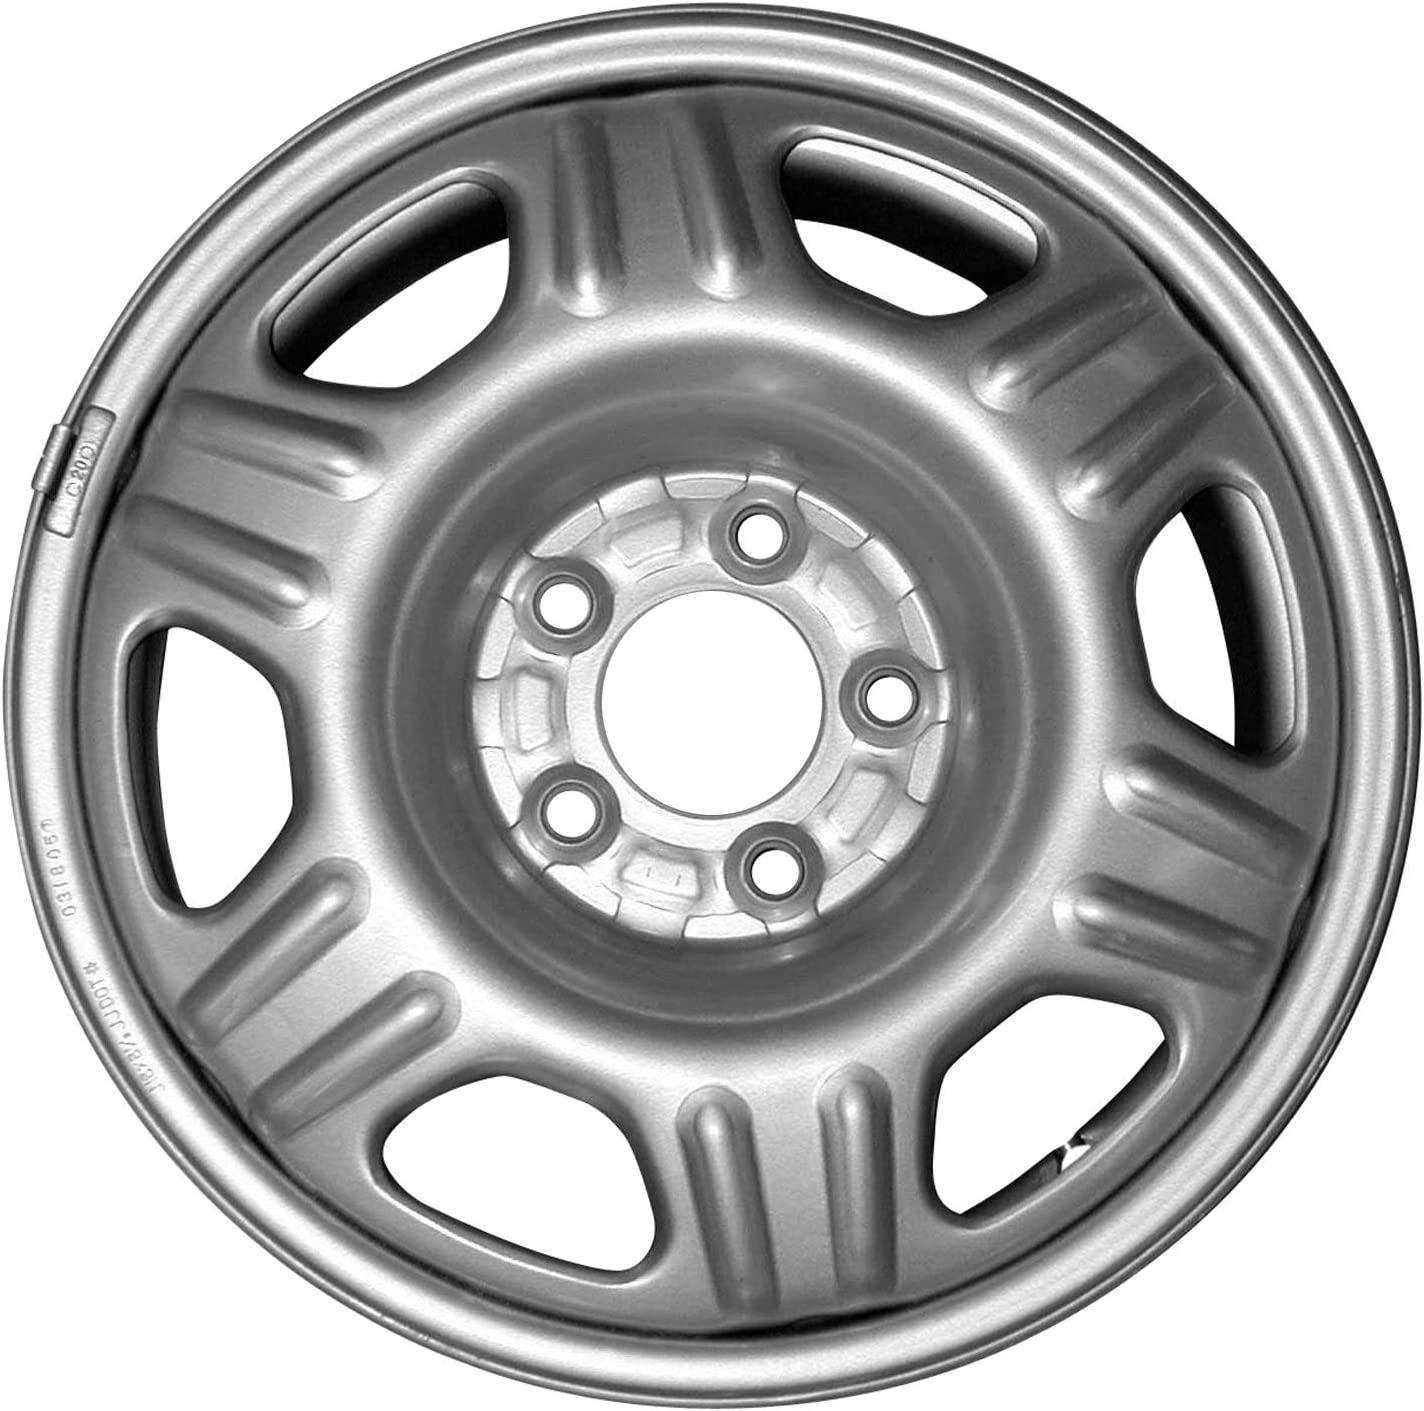 Max 66% OFF Max 70% OFF Factory Wheel Warehouse - New 16